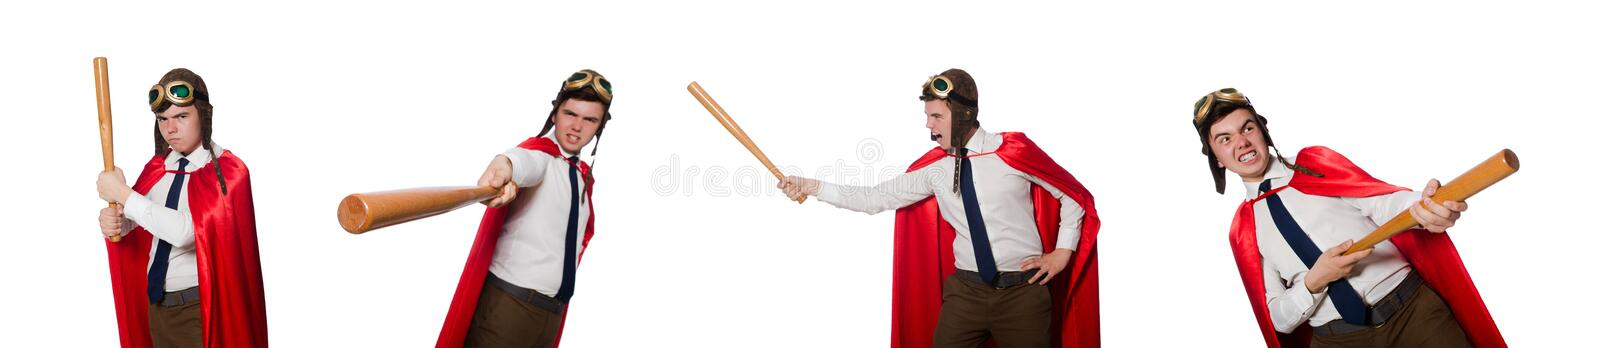 The funny hero isolated on the white stock image